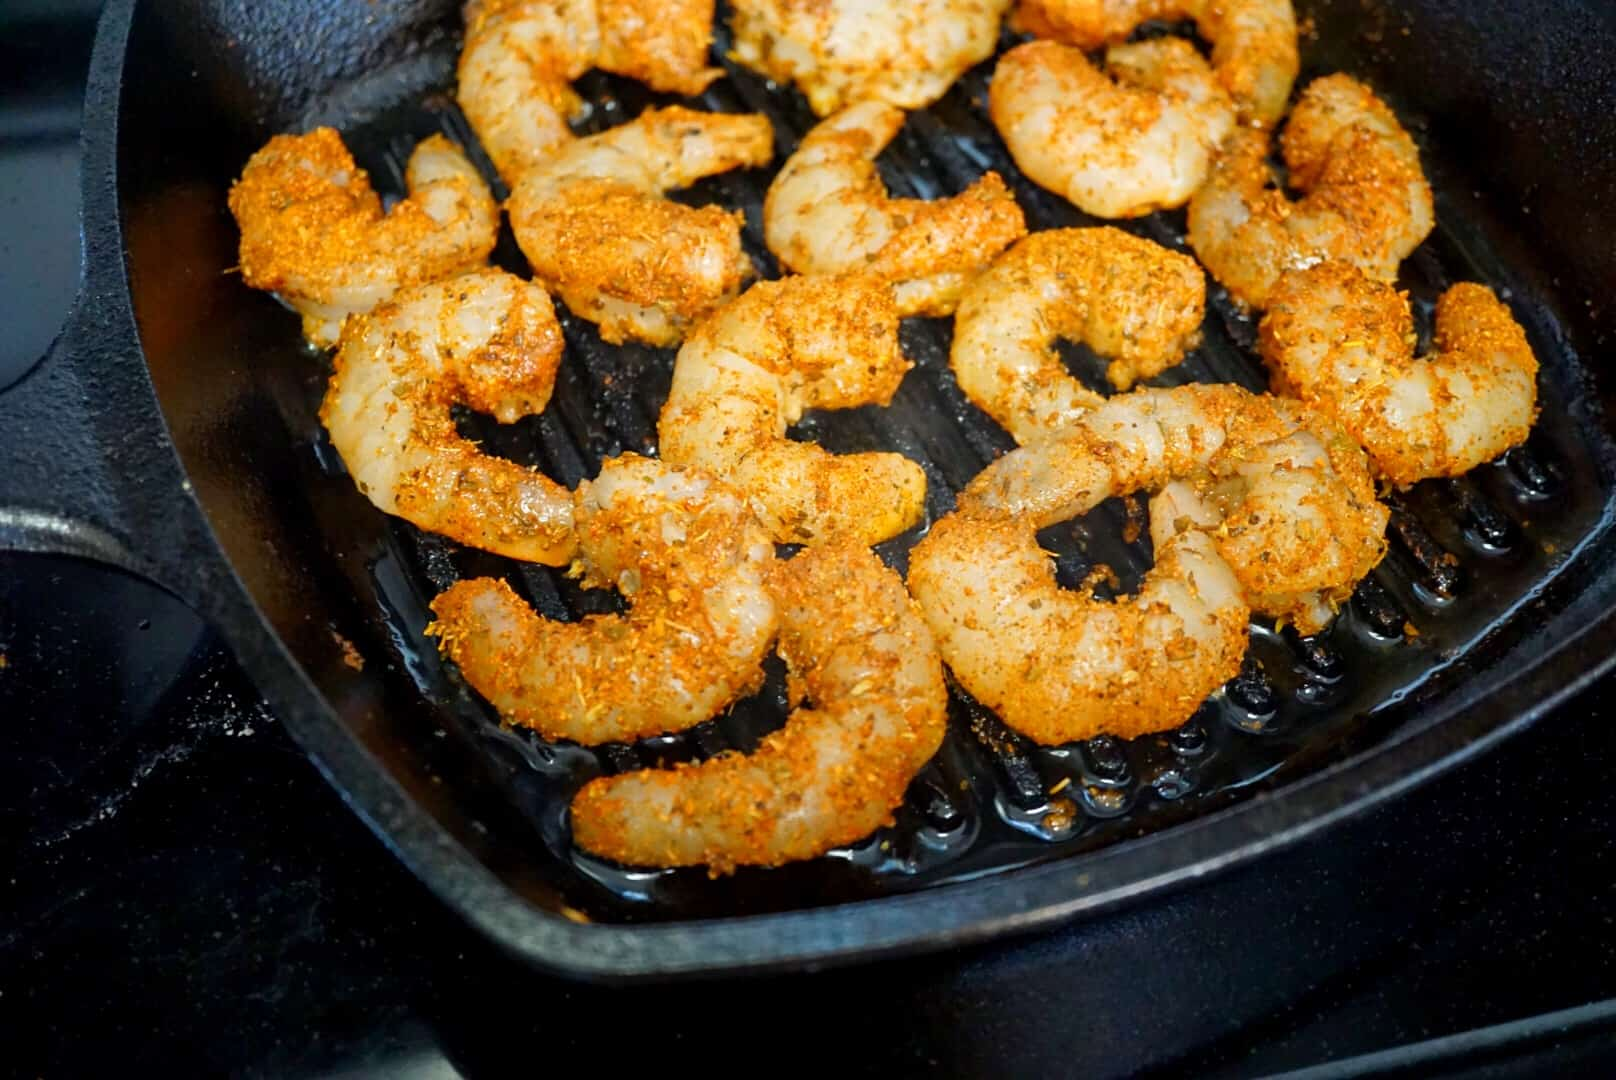 Blackened Shrimp in Pan